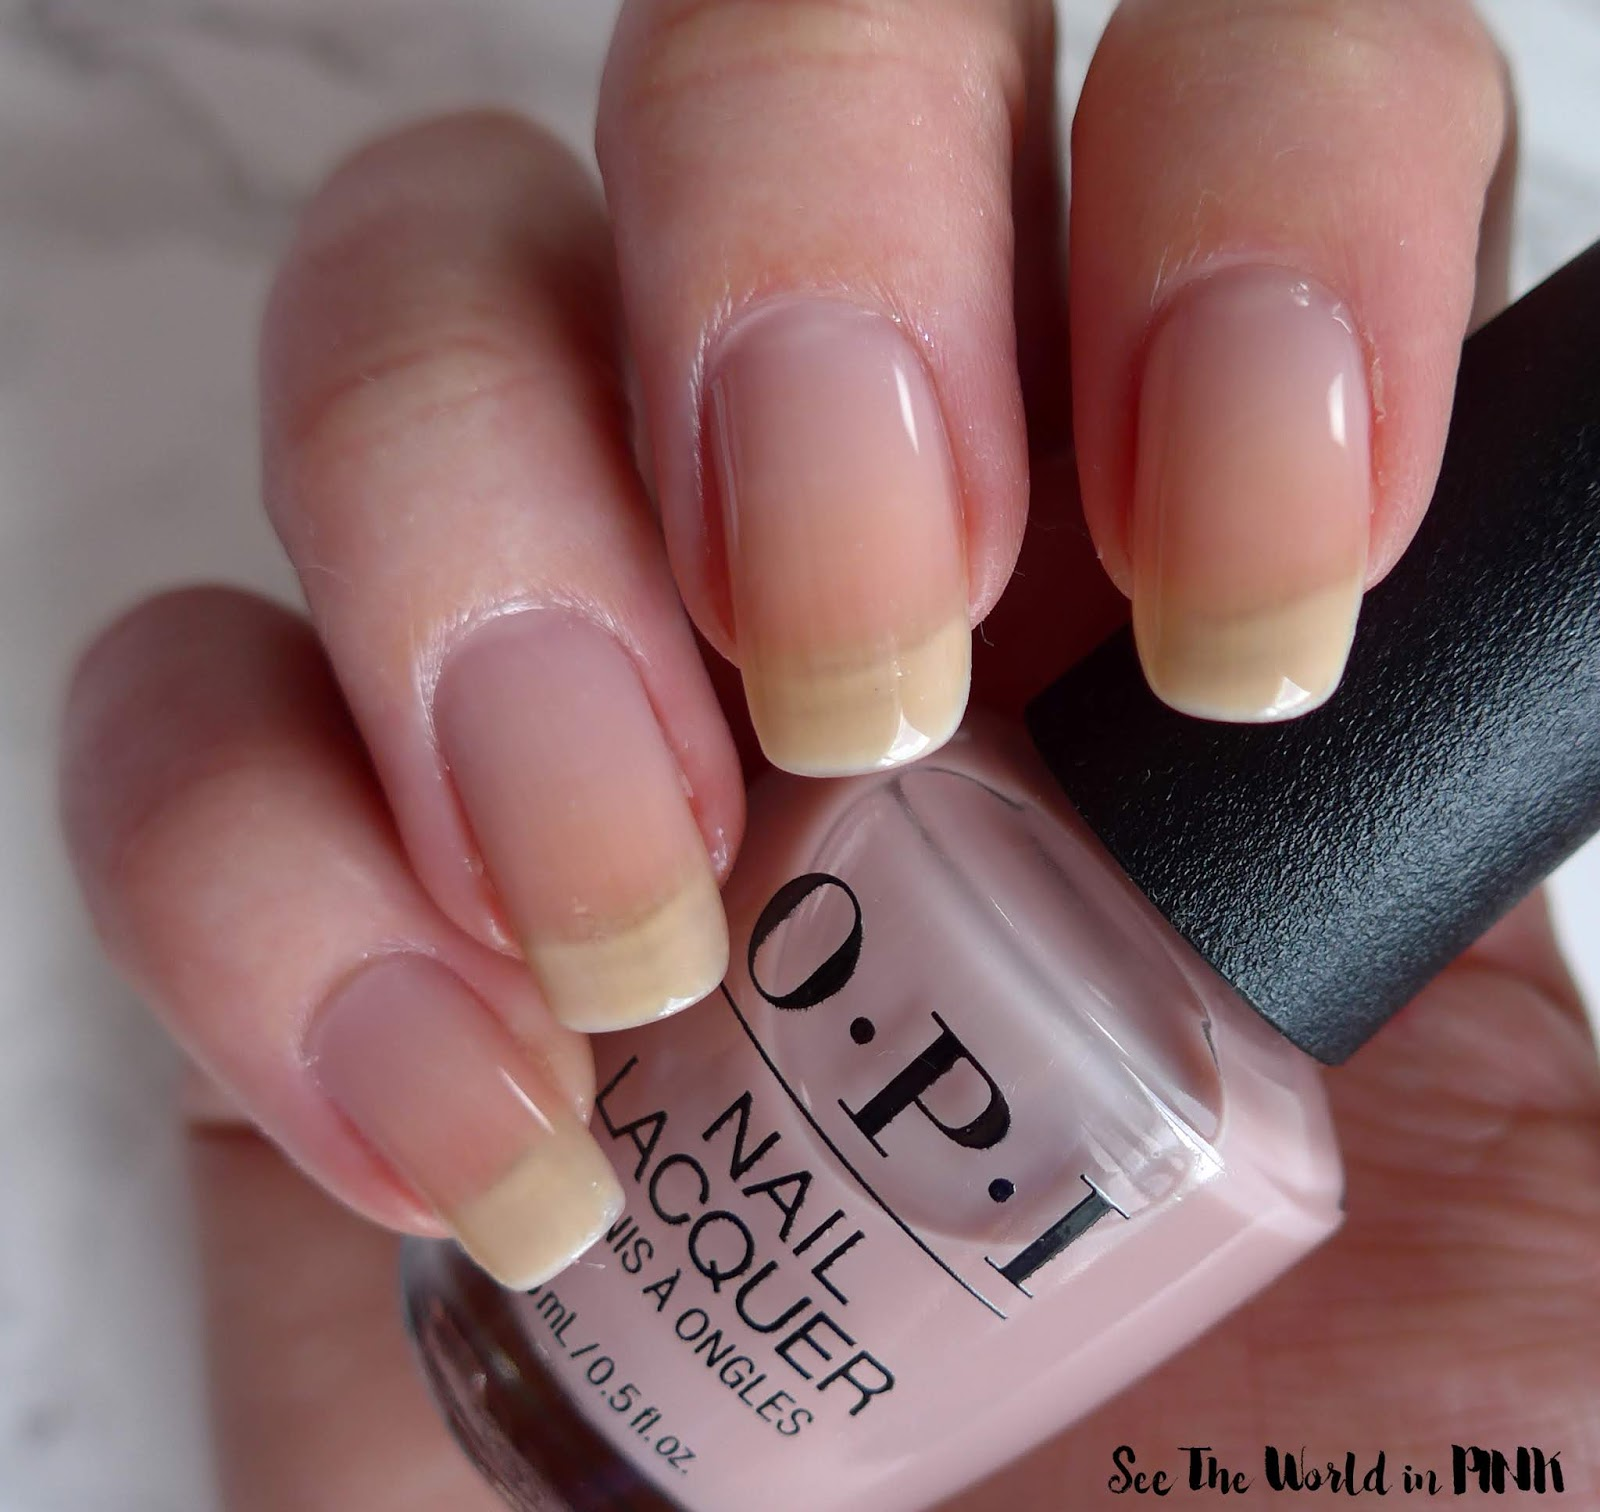 OPI Always Bare For You - Bare My Soul